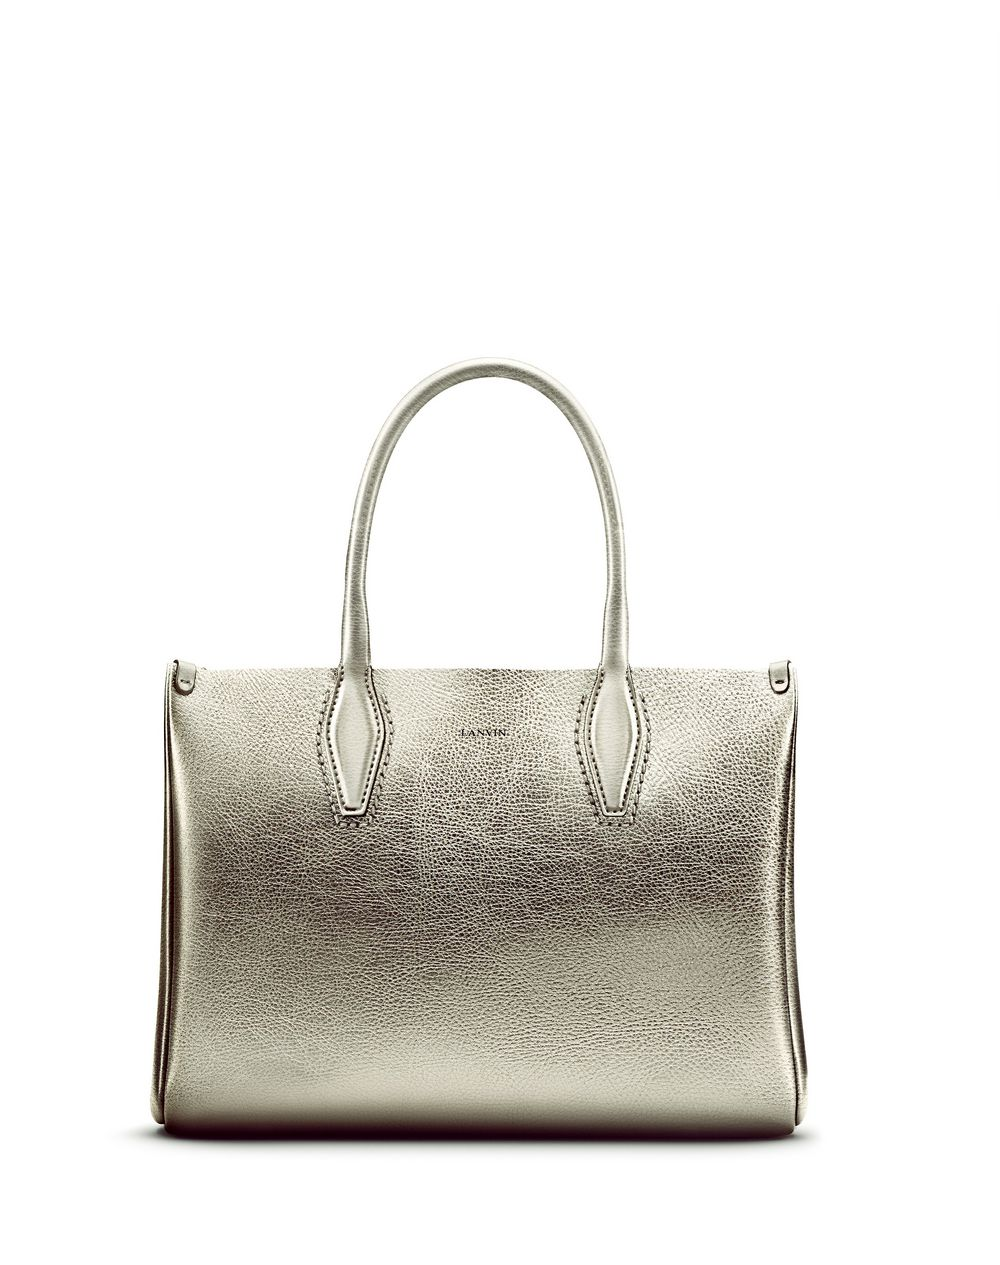 "SMALL PALE GOLD ""JOURNEE"" BAG - Lanvin"